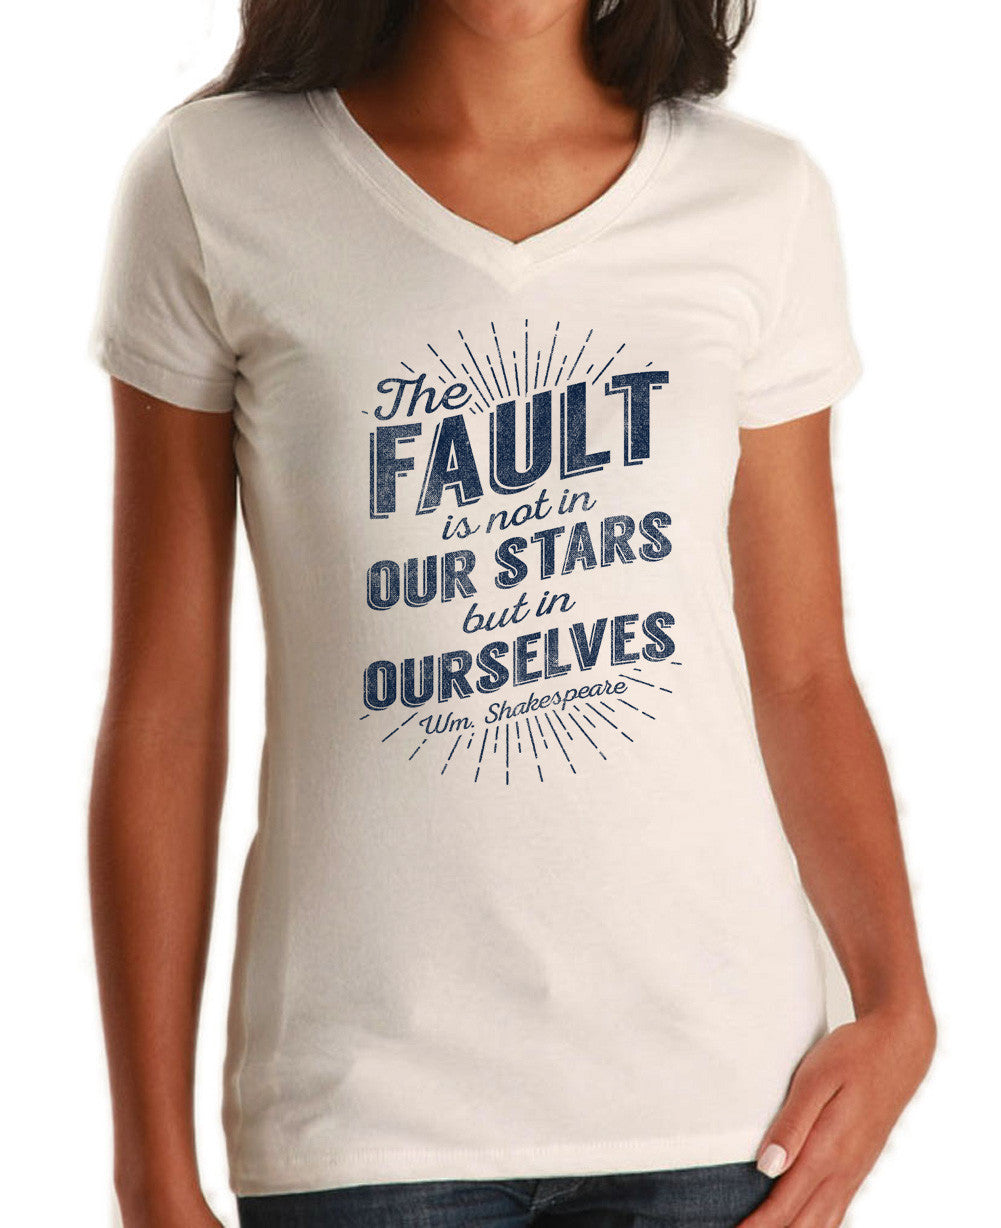 Women's The Fault is Not in Our Stars but in Ourselves Vneck T-Shirt